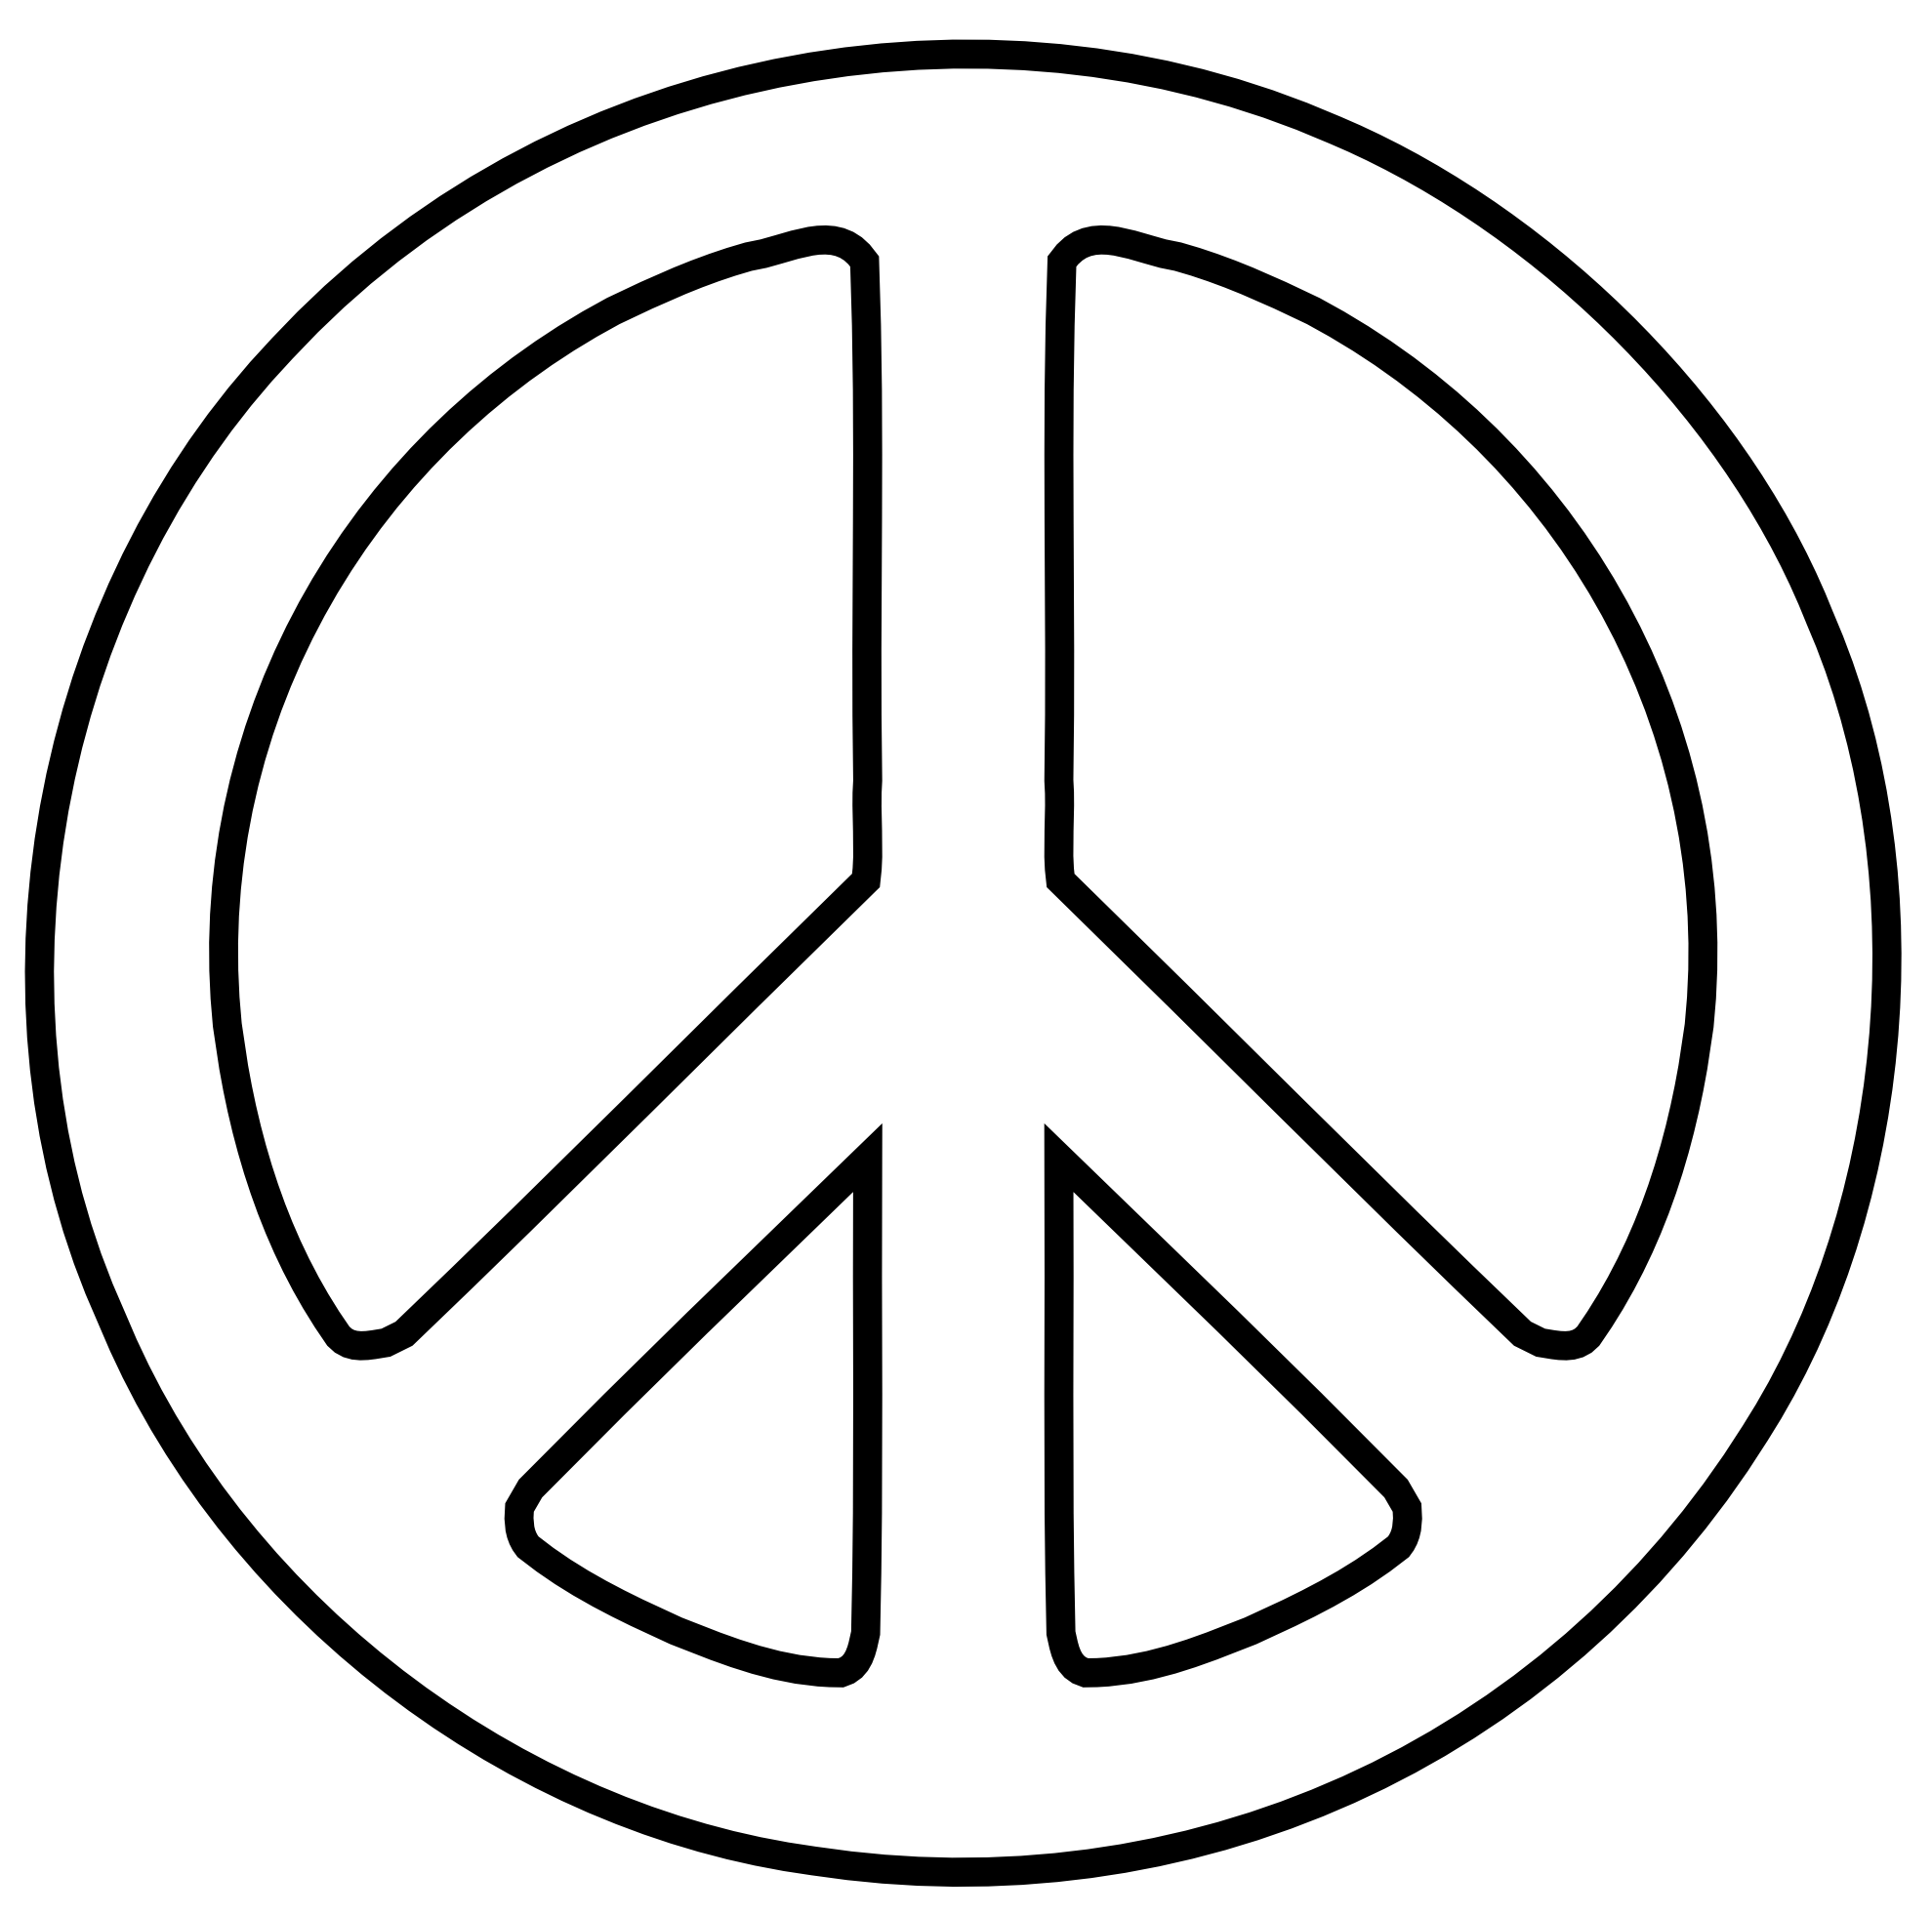 Peace Symbol Png Transparent Peace Symbolg Images Pluspng